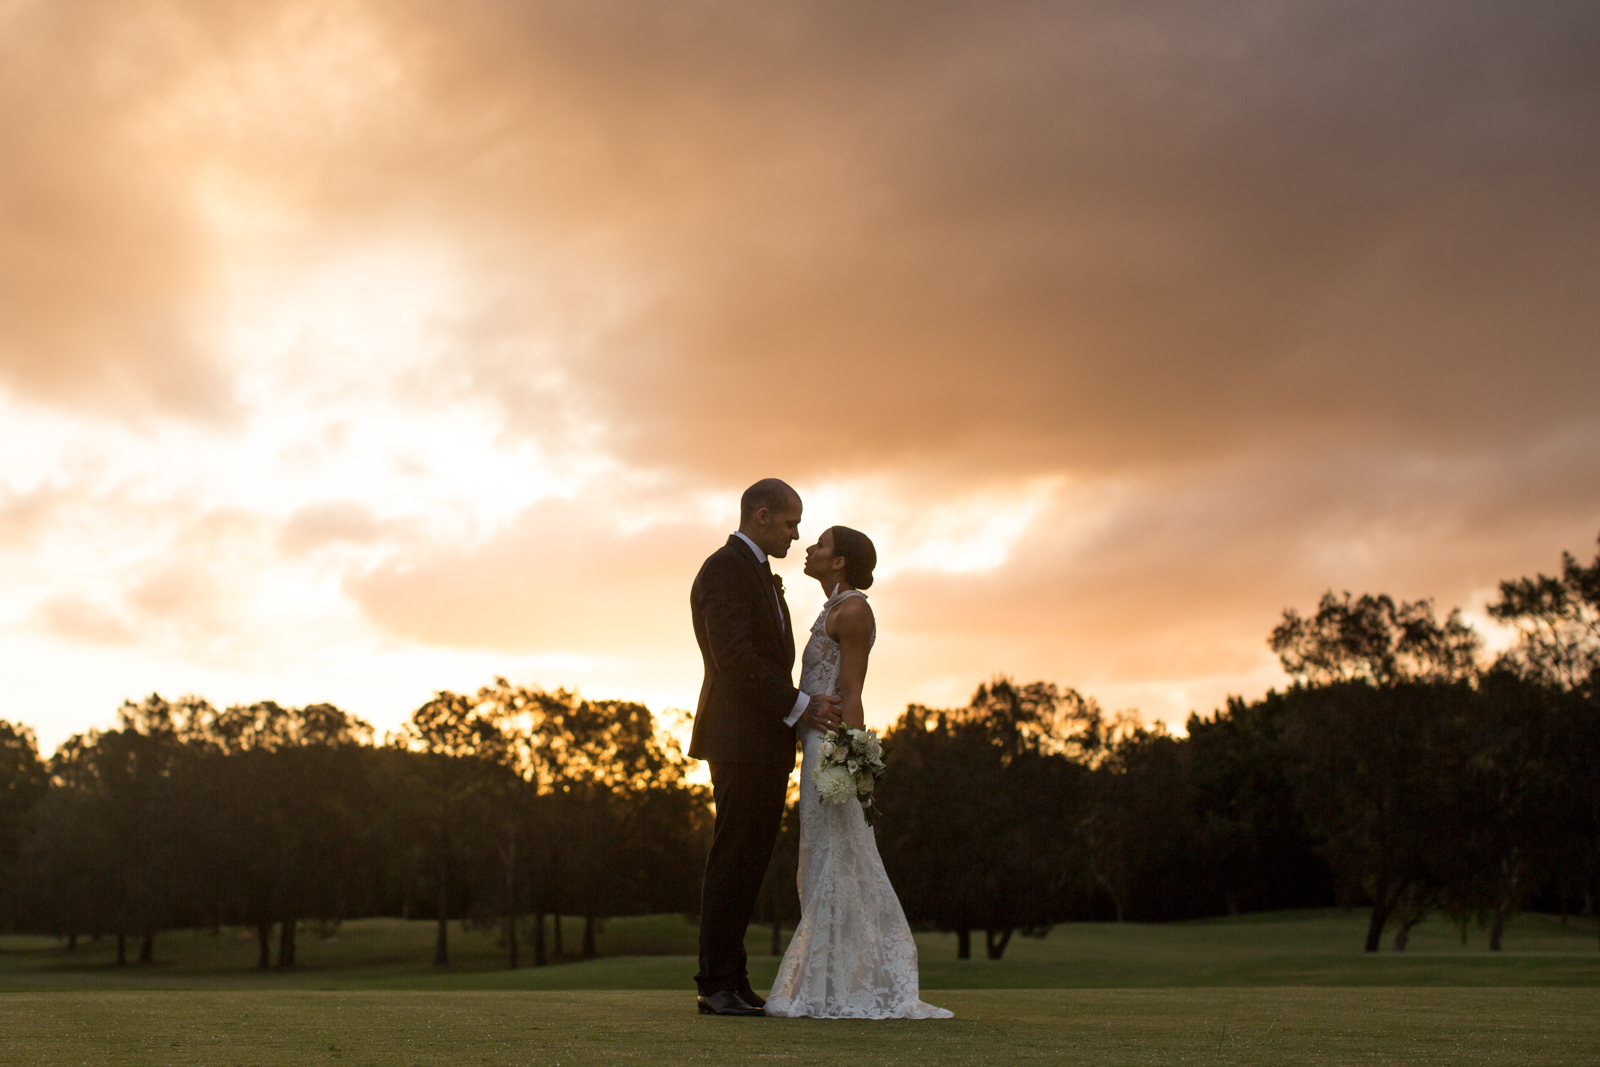 133-Bec_Kilpatrick_Photography_Bianca_and_Chris_GoldCoast_Wedding_DancingATP_763622